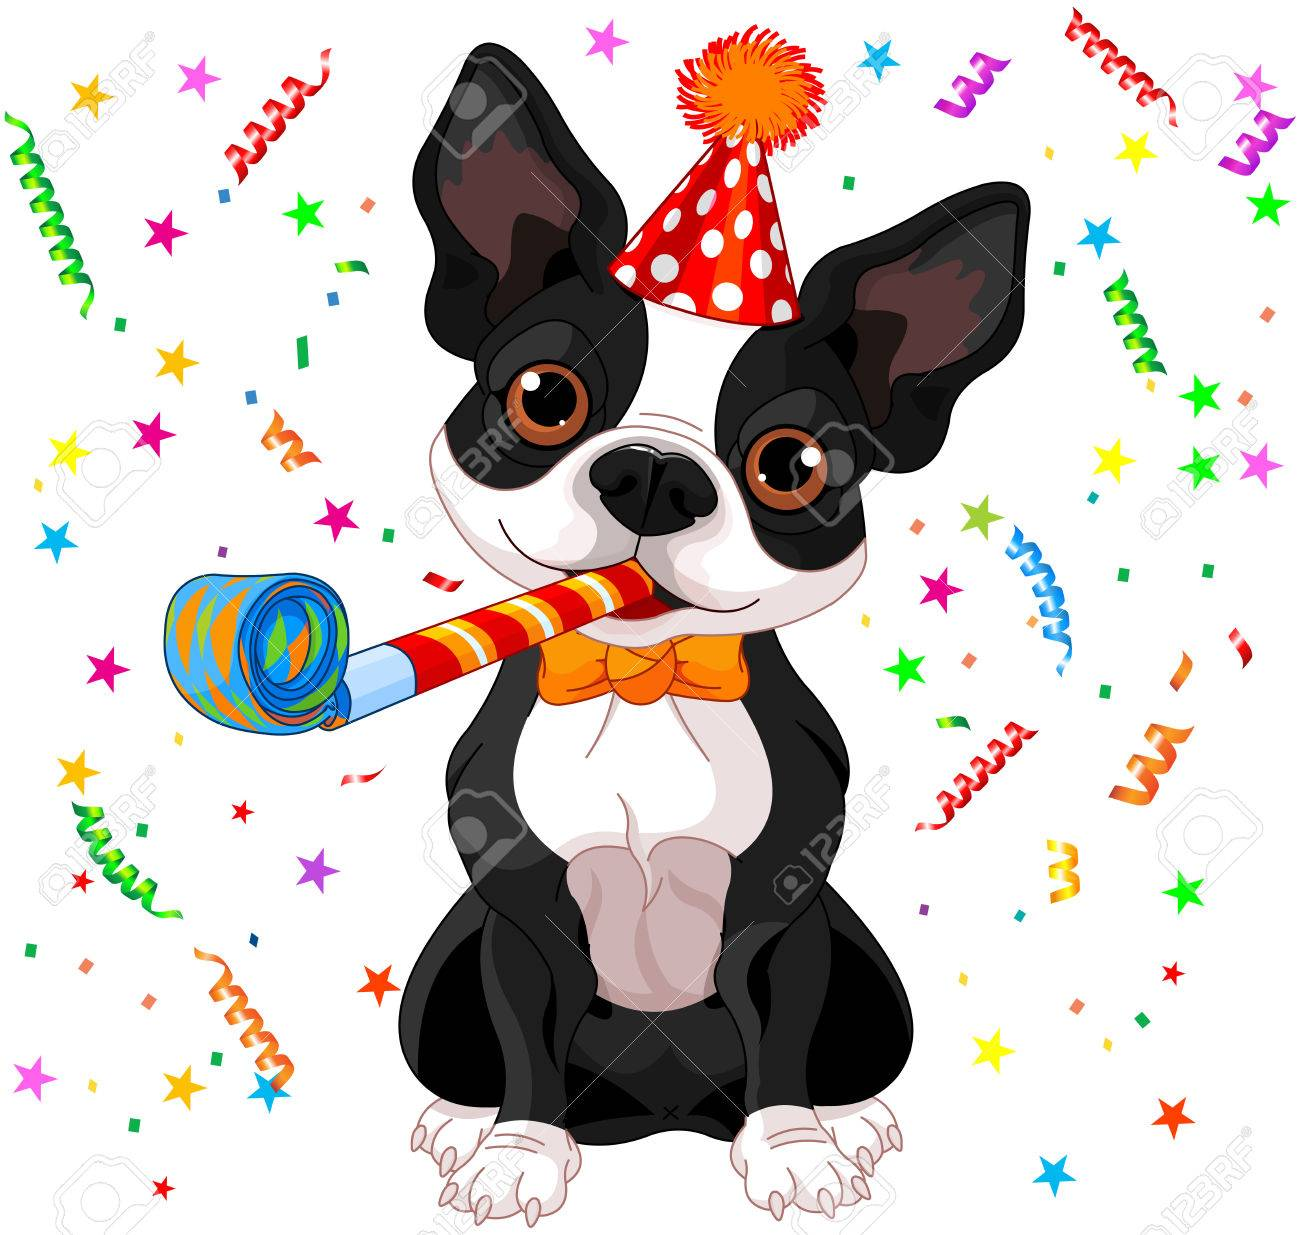 Peur et agressivité sur humain et chien - Page 19 35588778-illustration-of-cute-boston-terrier-celebrating